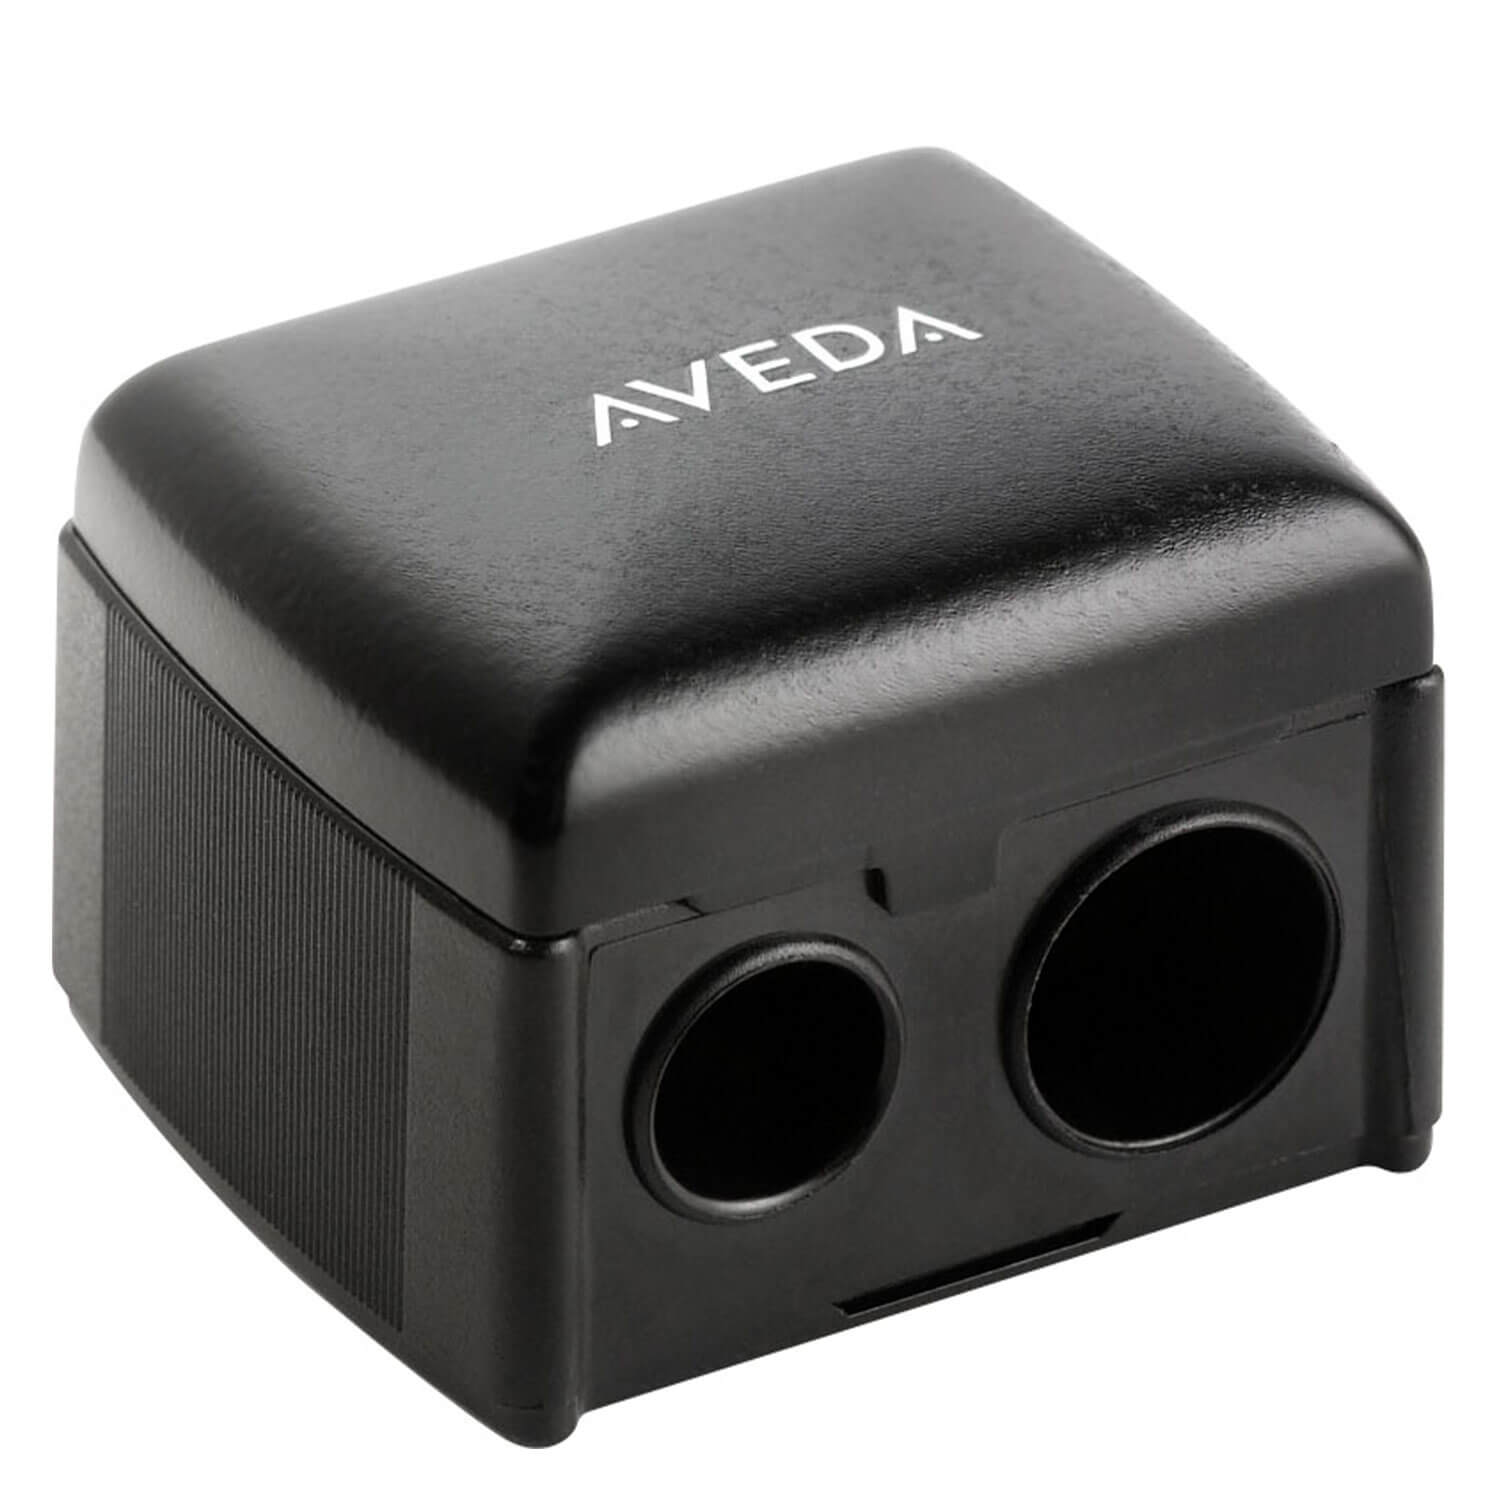 aveda tools - pencil sharpener